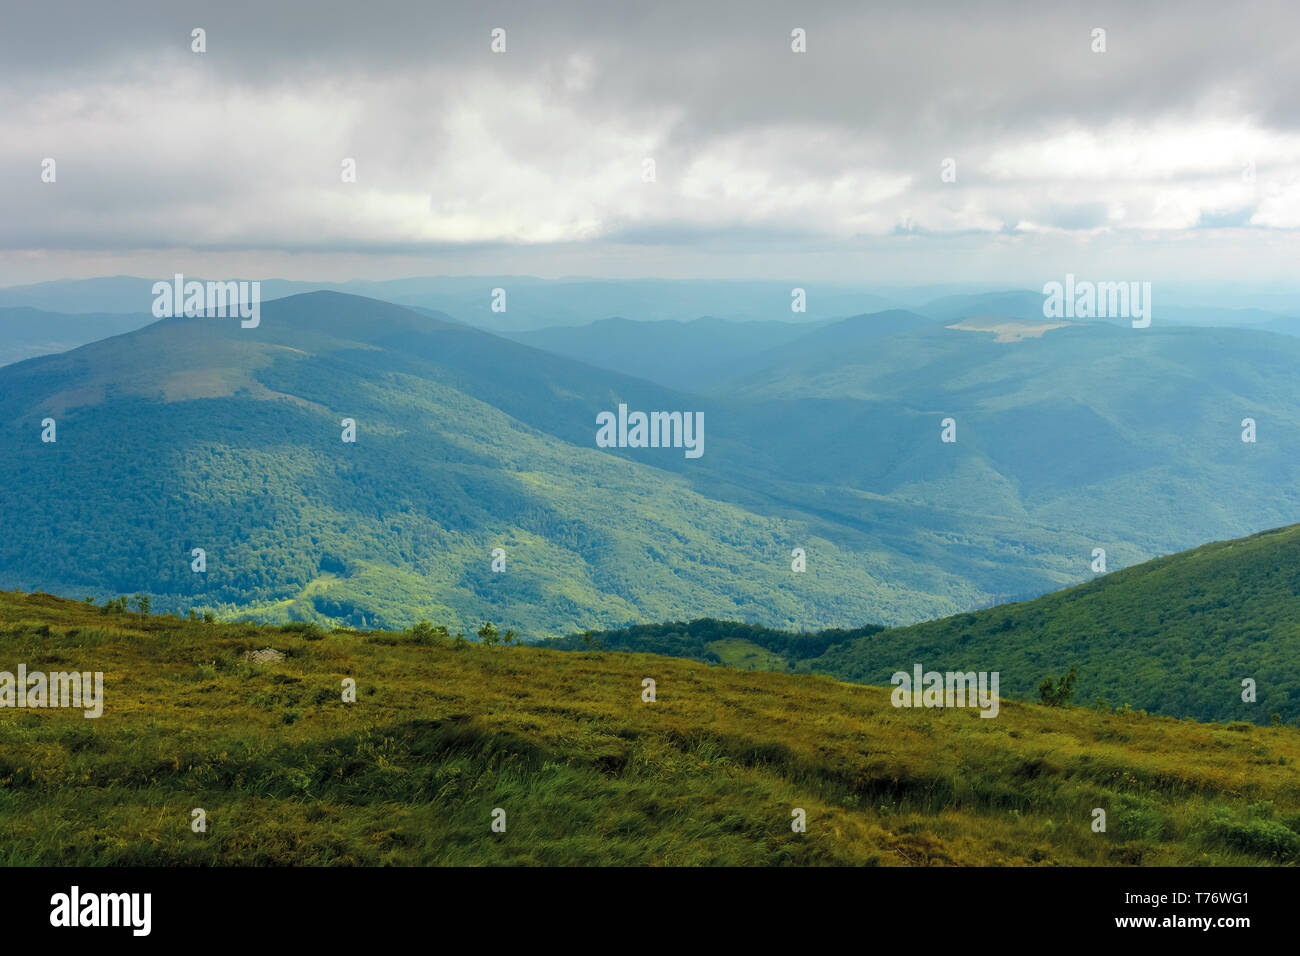 sun lit valley in afternoon. beautiful mountainous landscape and cloudy sky in golden light. lovely scenery after the storm. view from the top of a hi - Stock Image